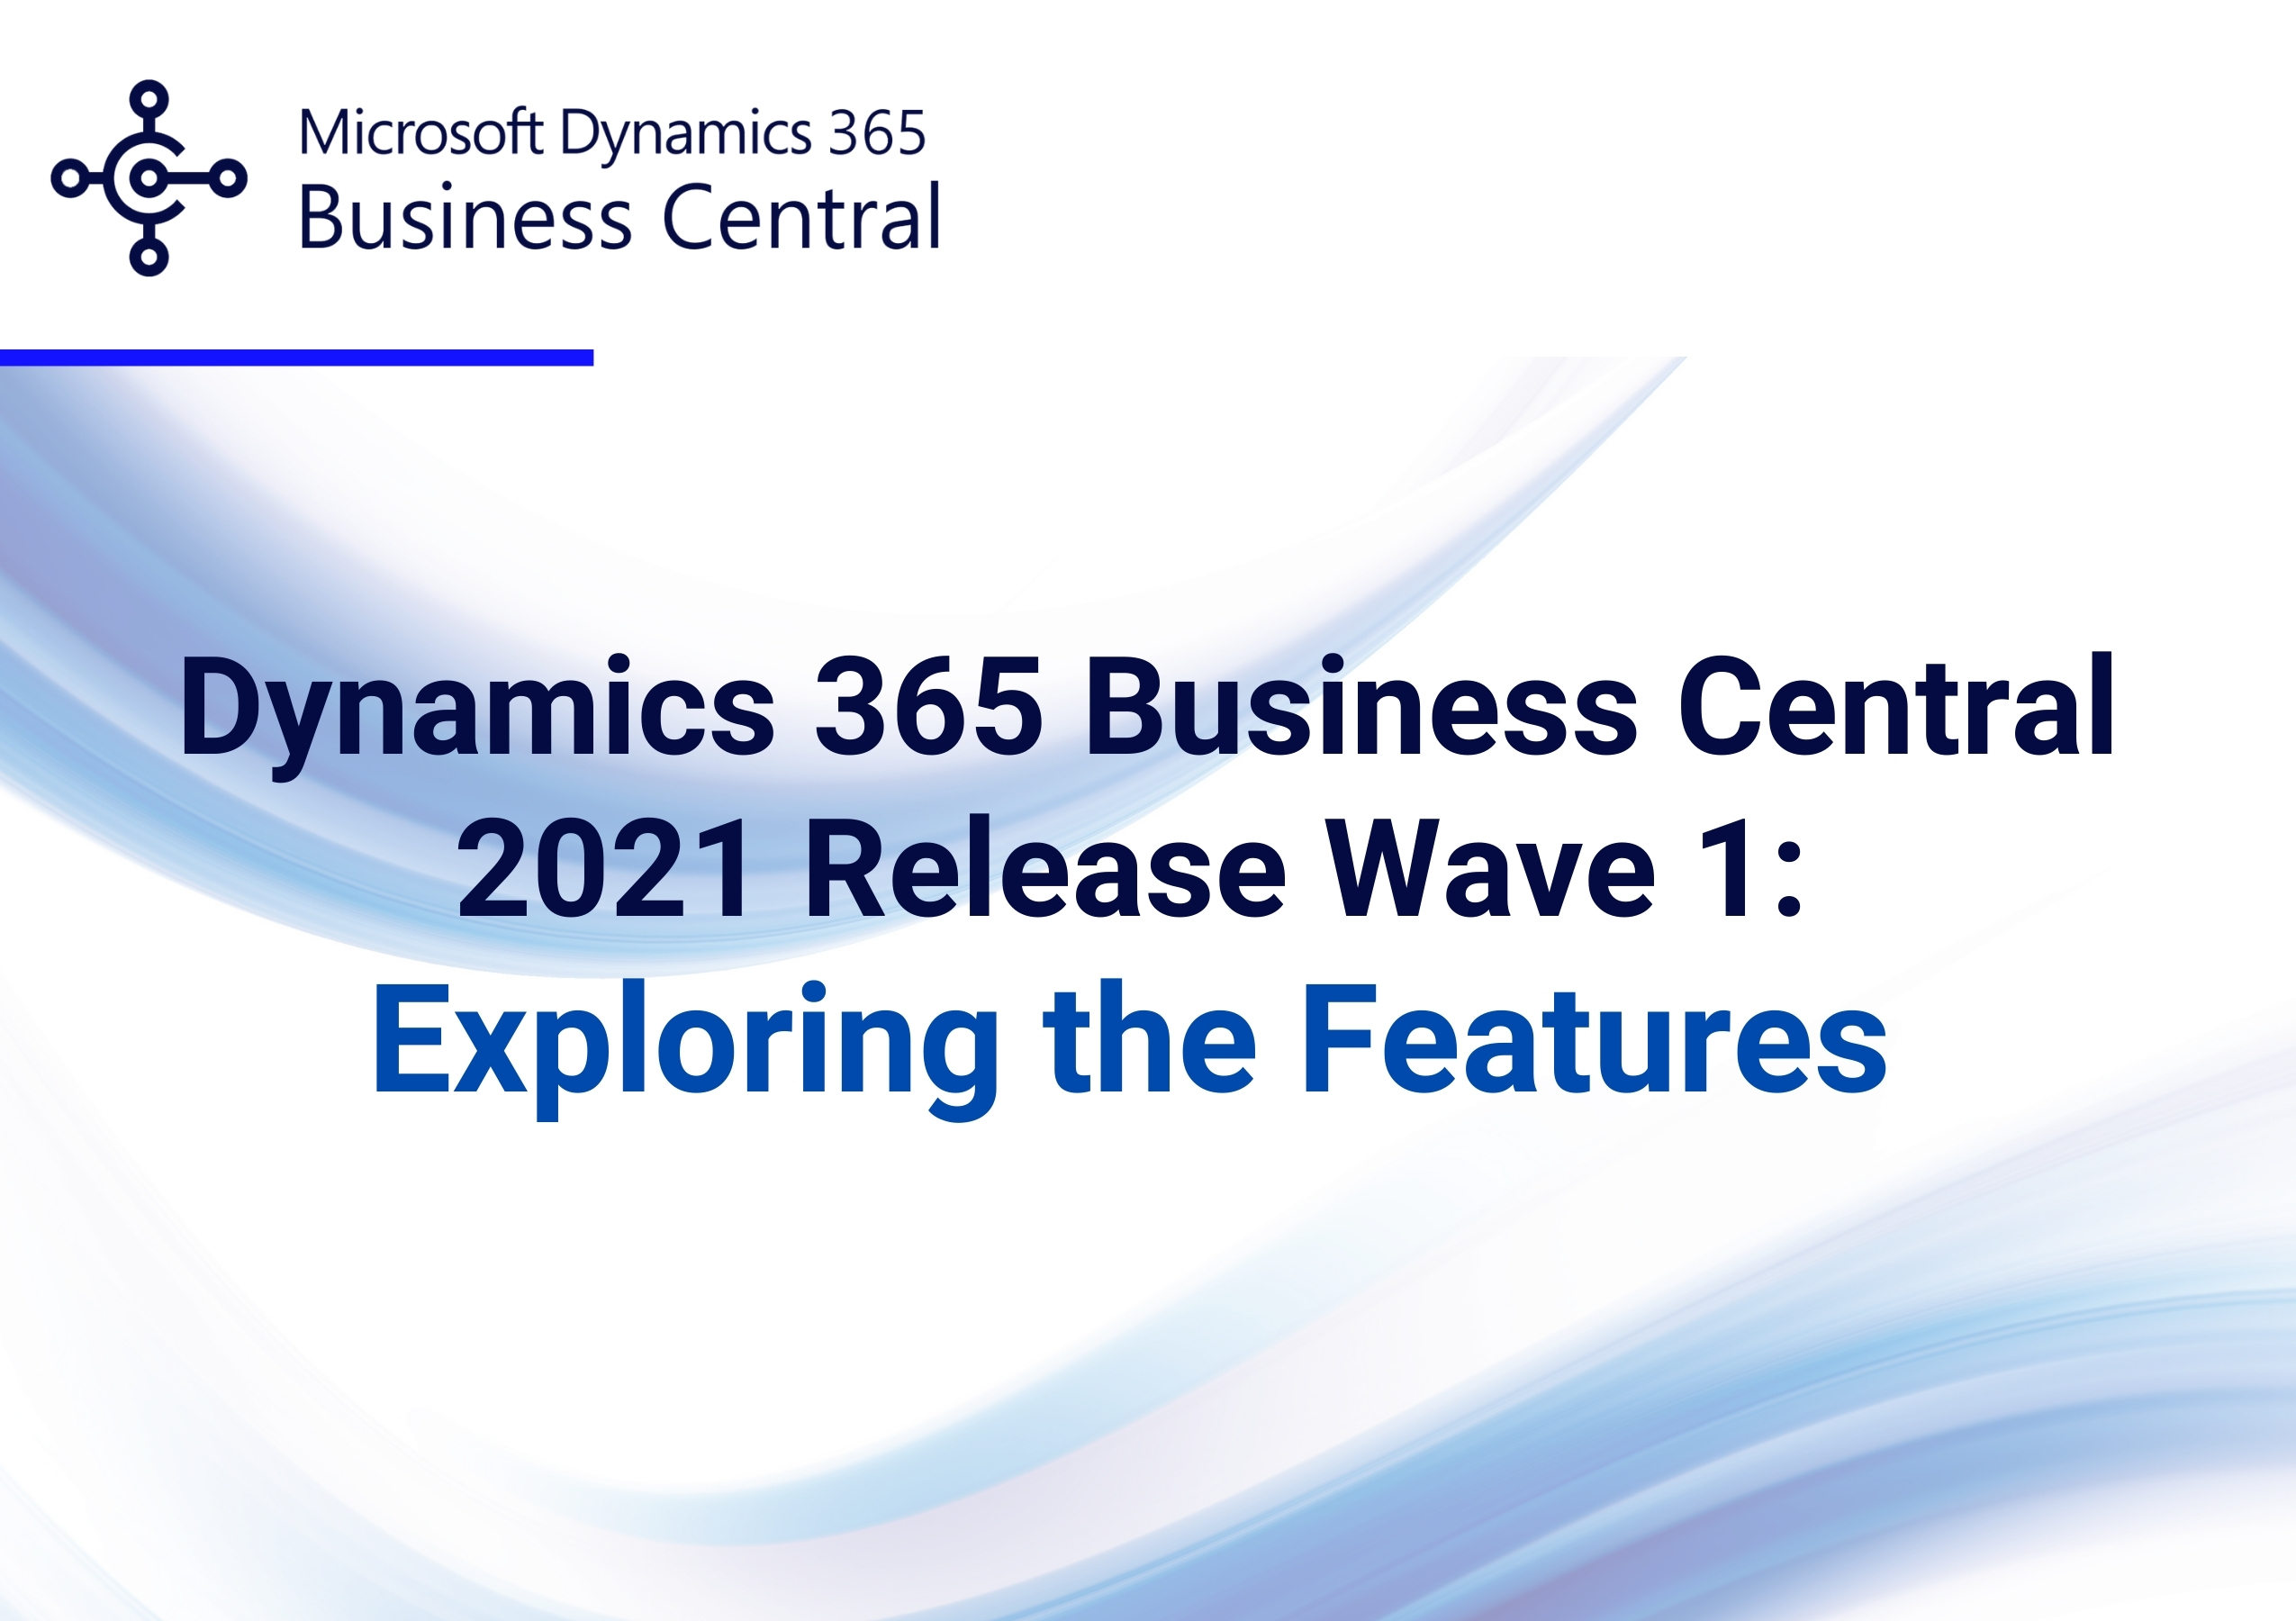 Business Central Release Wave 1